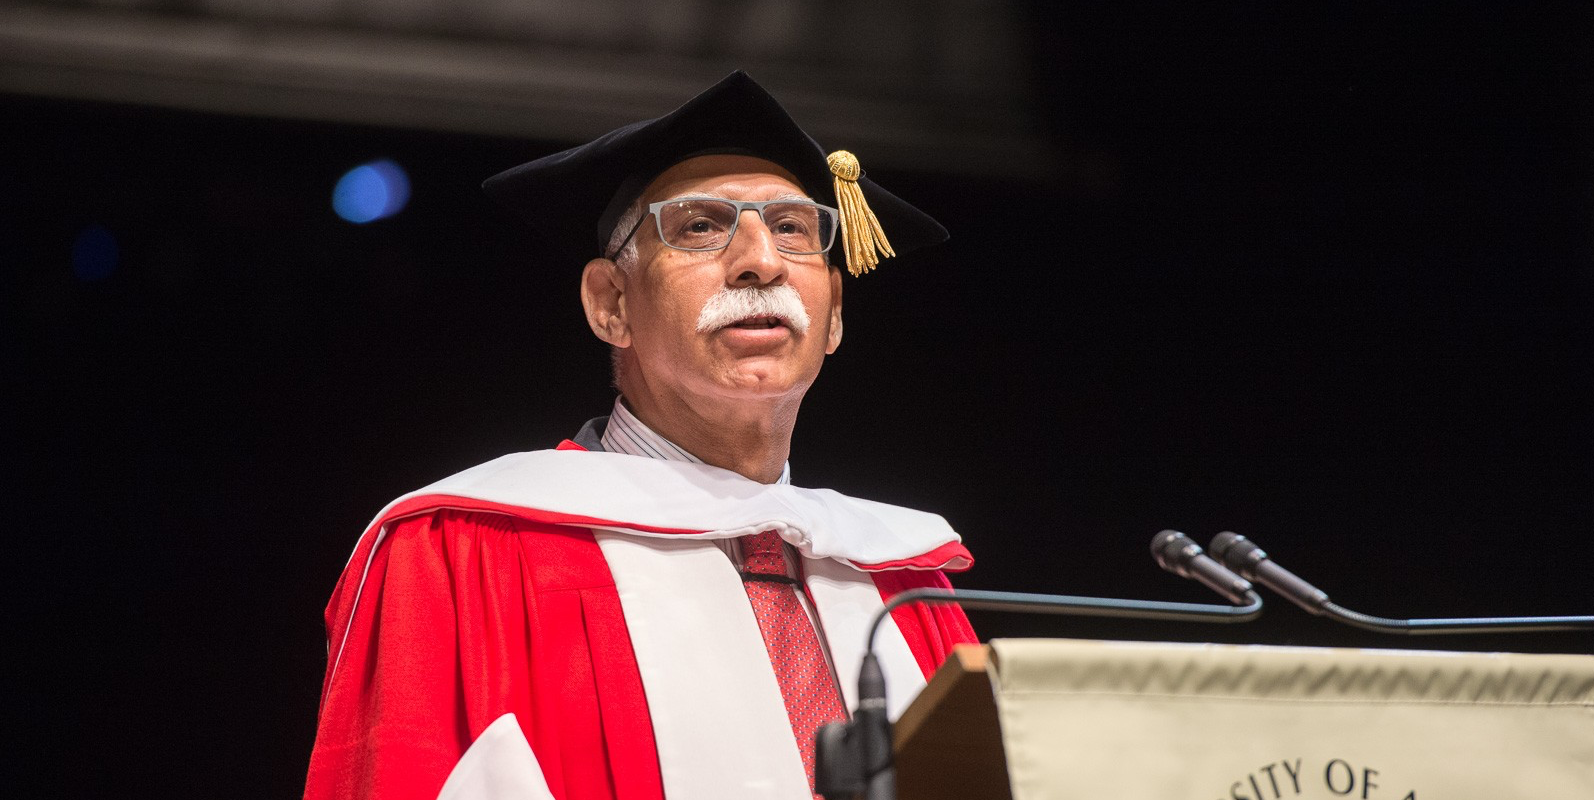 Firoz Rasul, president of Aga Khan University, addresses graduates after receiving an honorary Doctor of Science degree on June 8. (Photo by Richard Siemens)